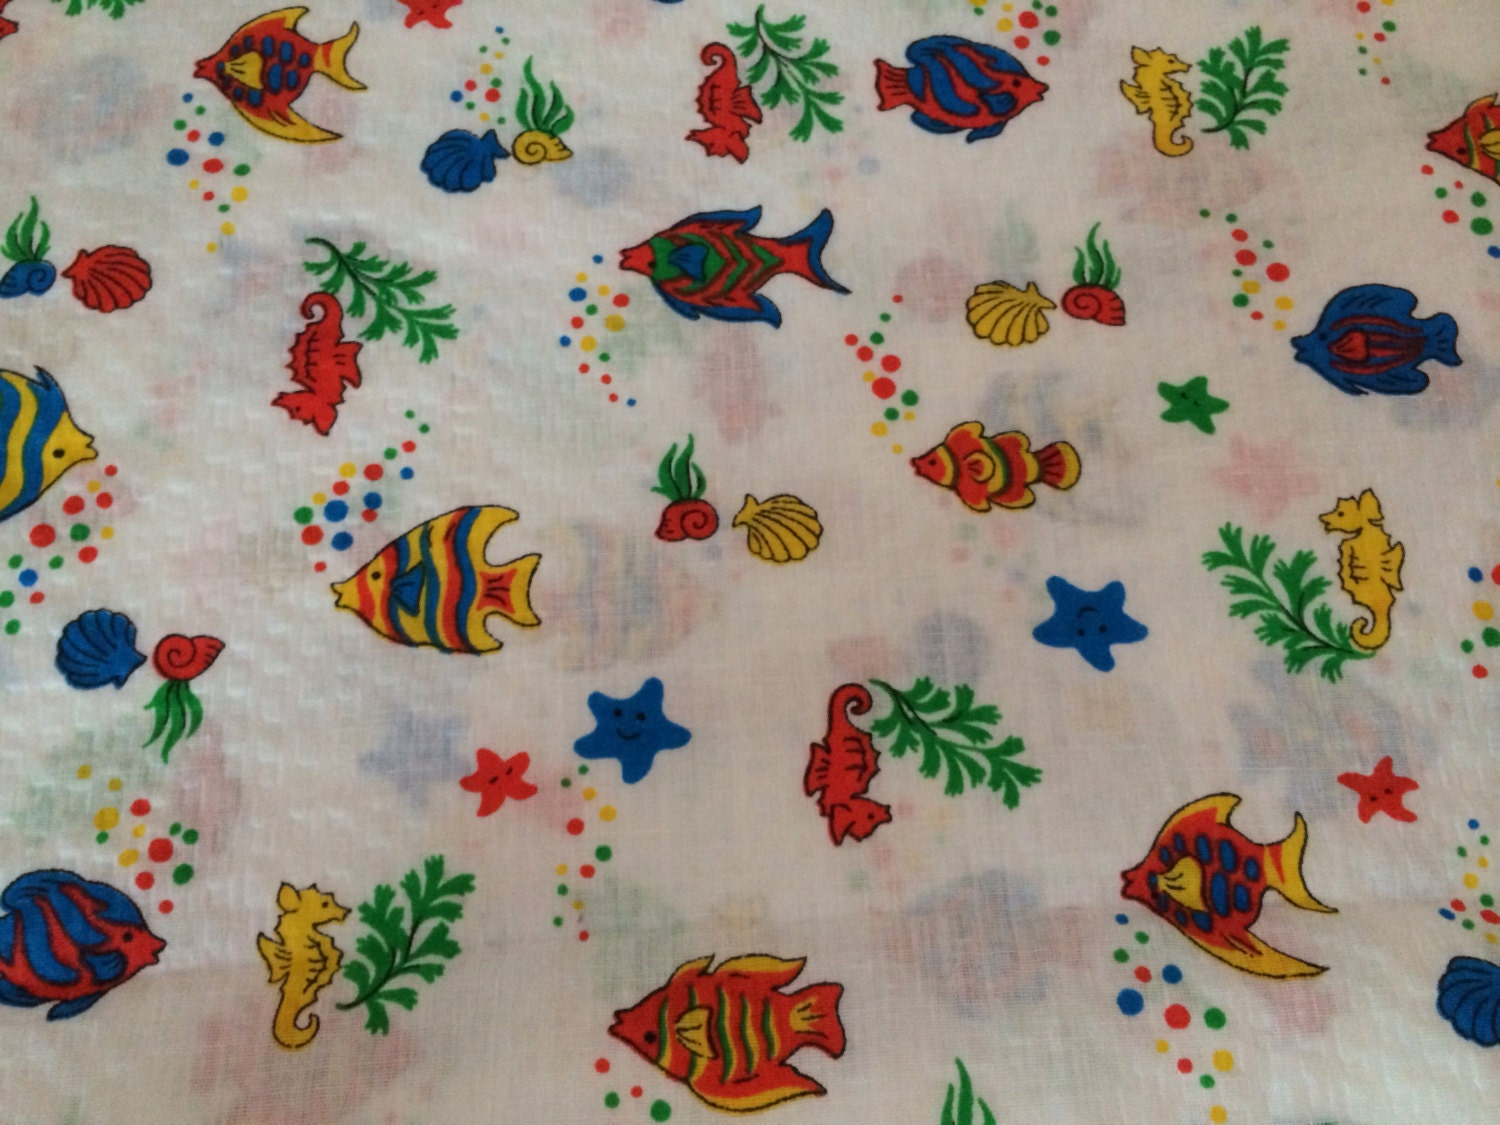 Fish print fabric wamsutta otc 2 yds sea theme colorful for Fishing themed fabric